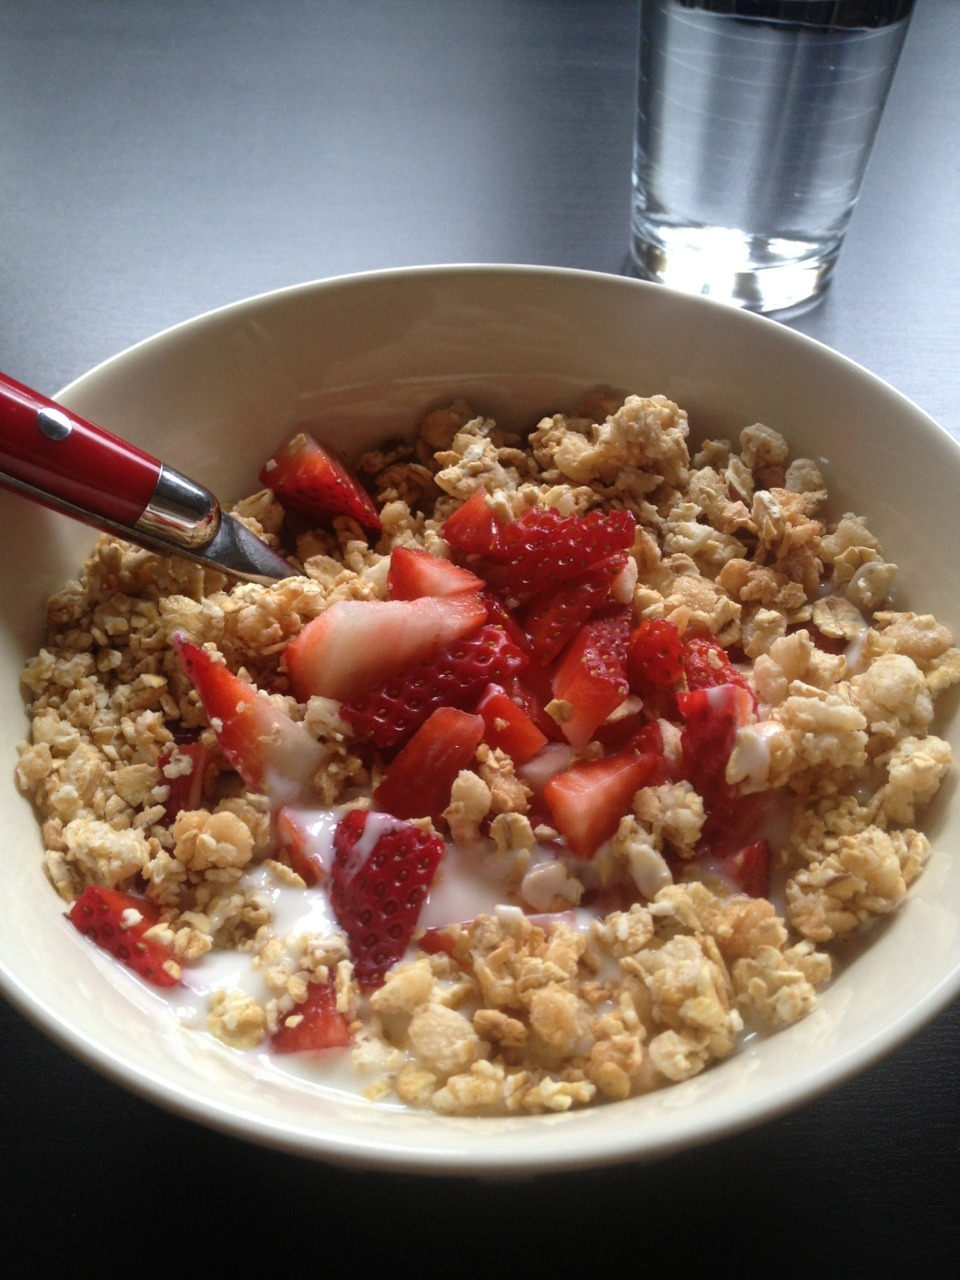 One of my favorite breakfasts! Vanilla yogurt, no sugar granola and fresh strawberries. So yum!